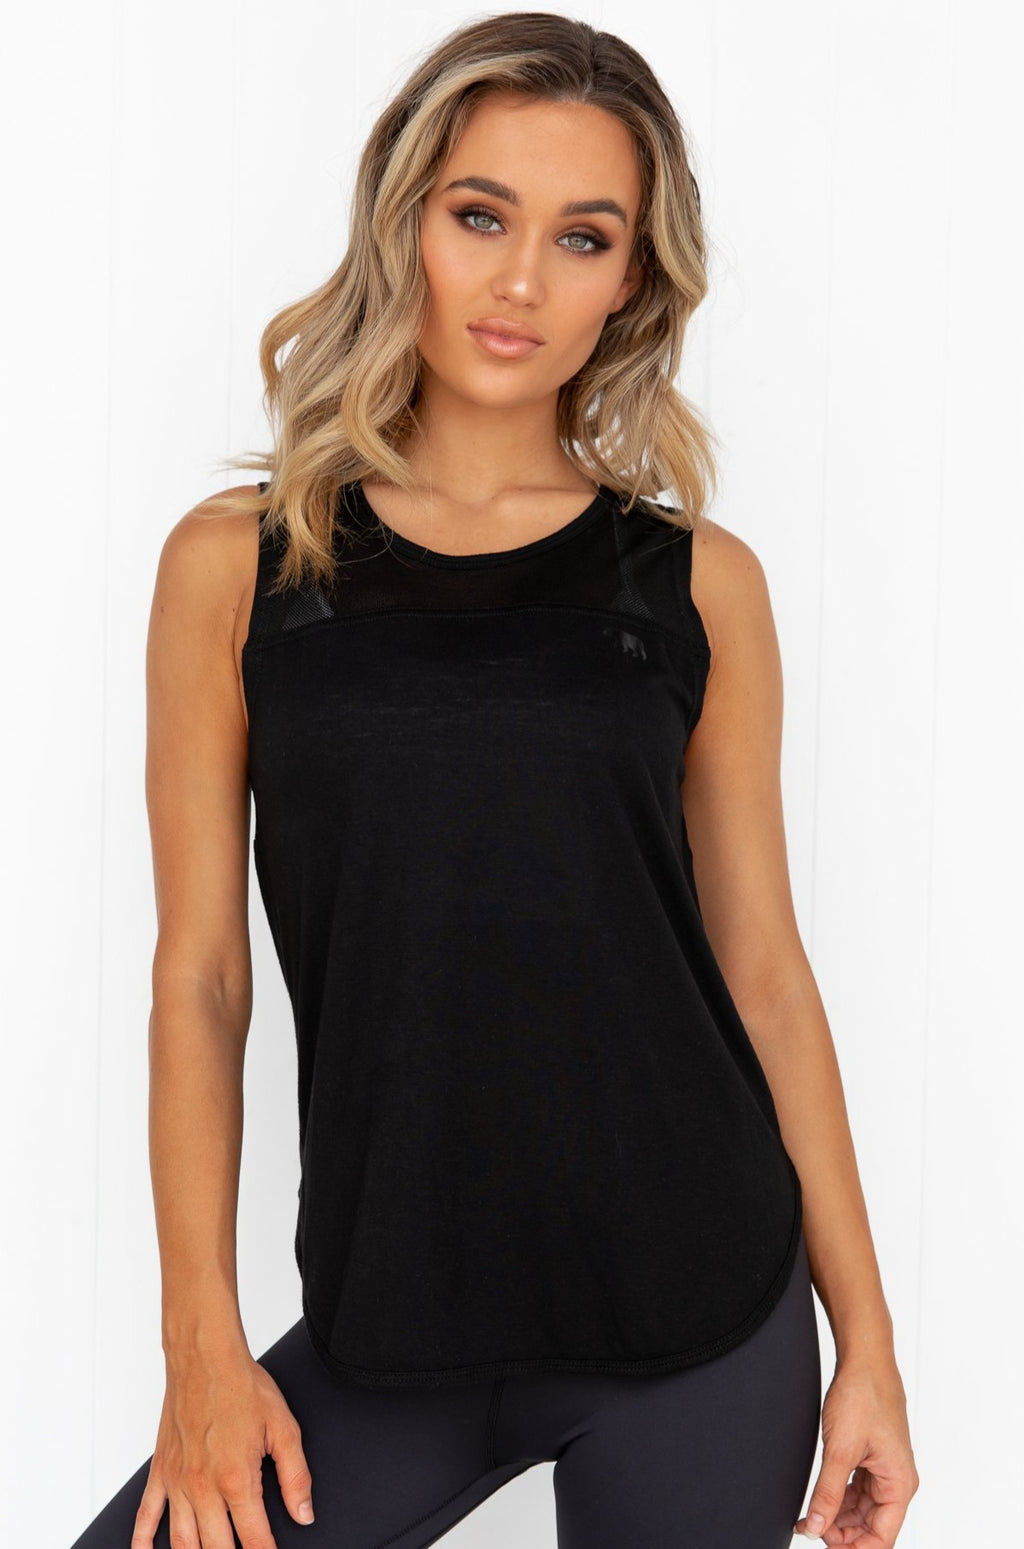 Batter Up Tank - Black - PURE DASH